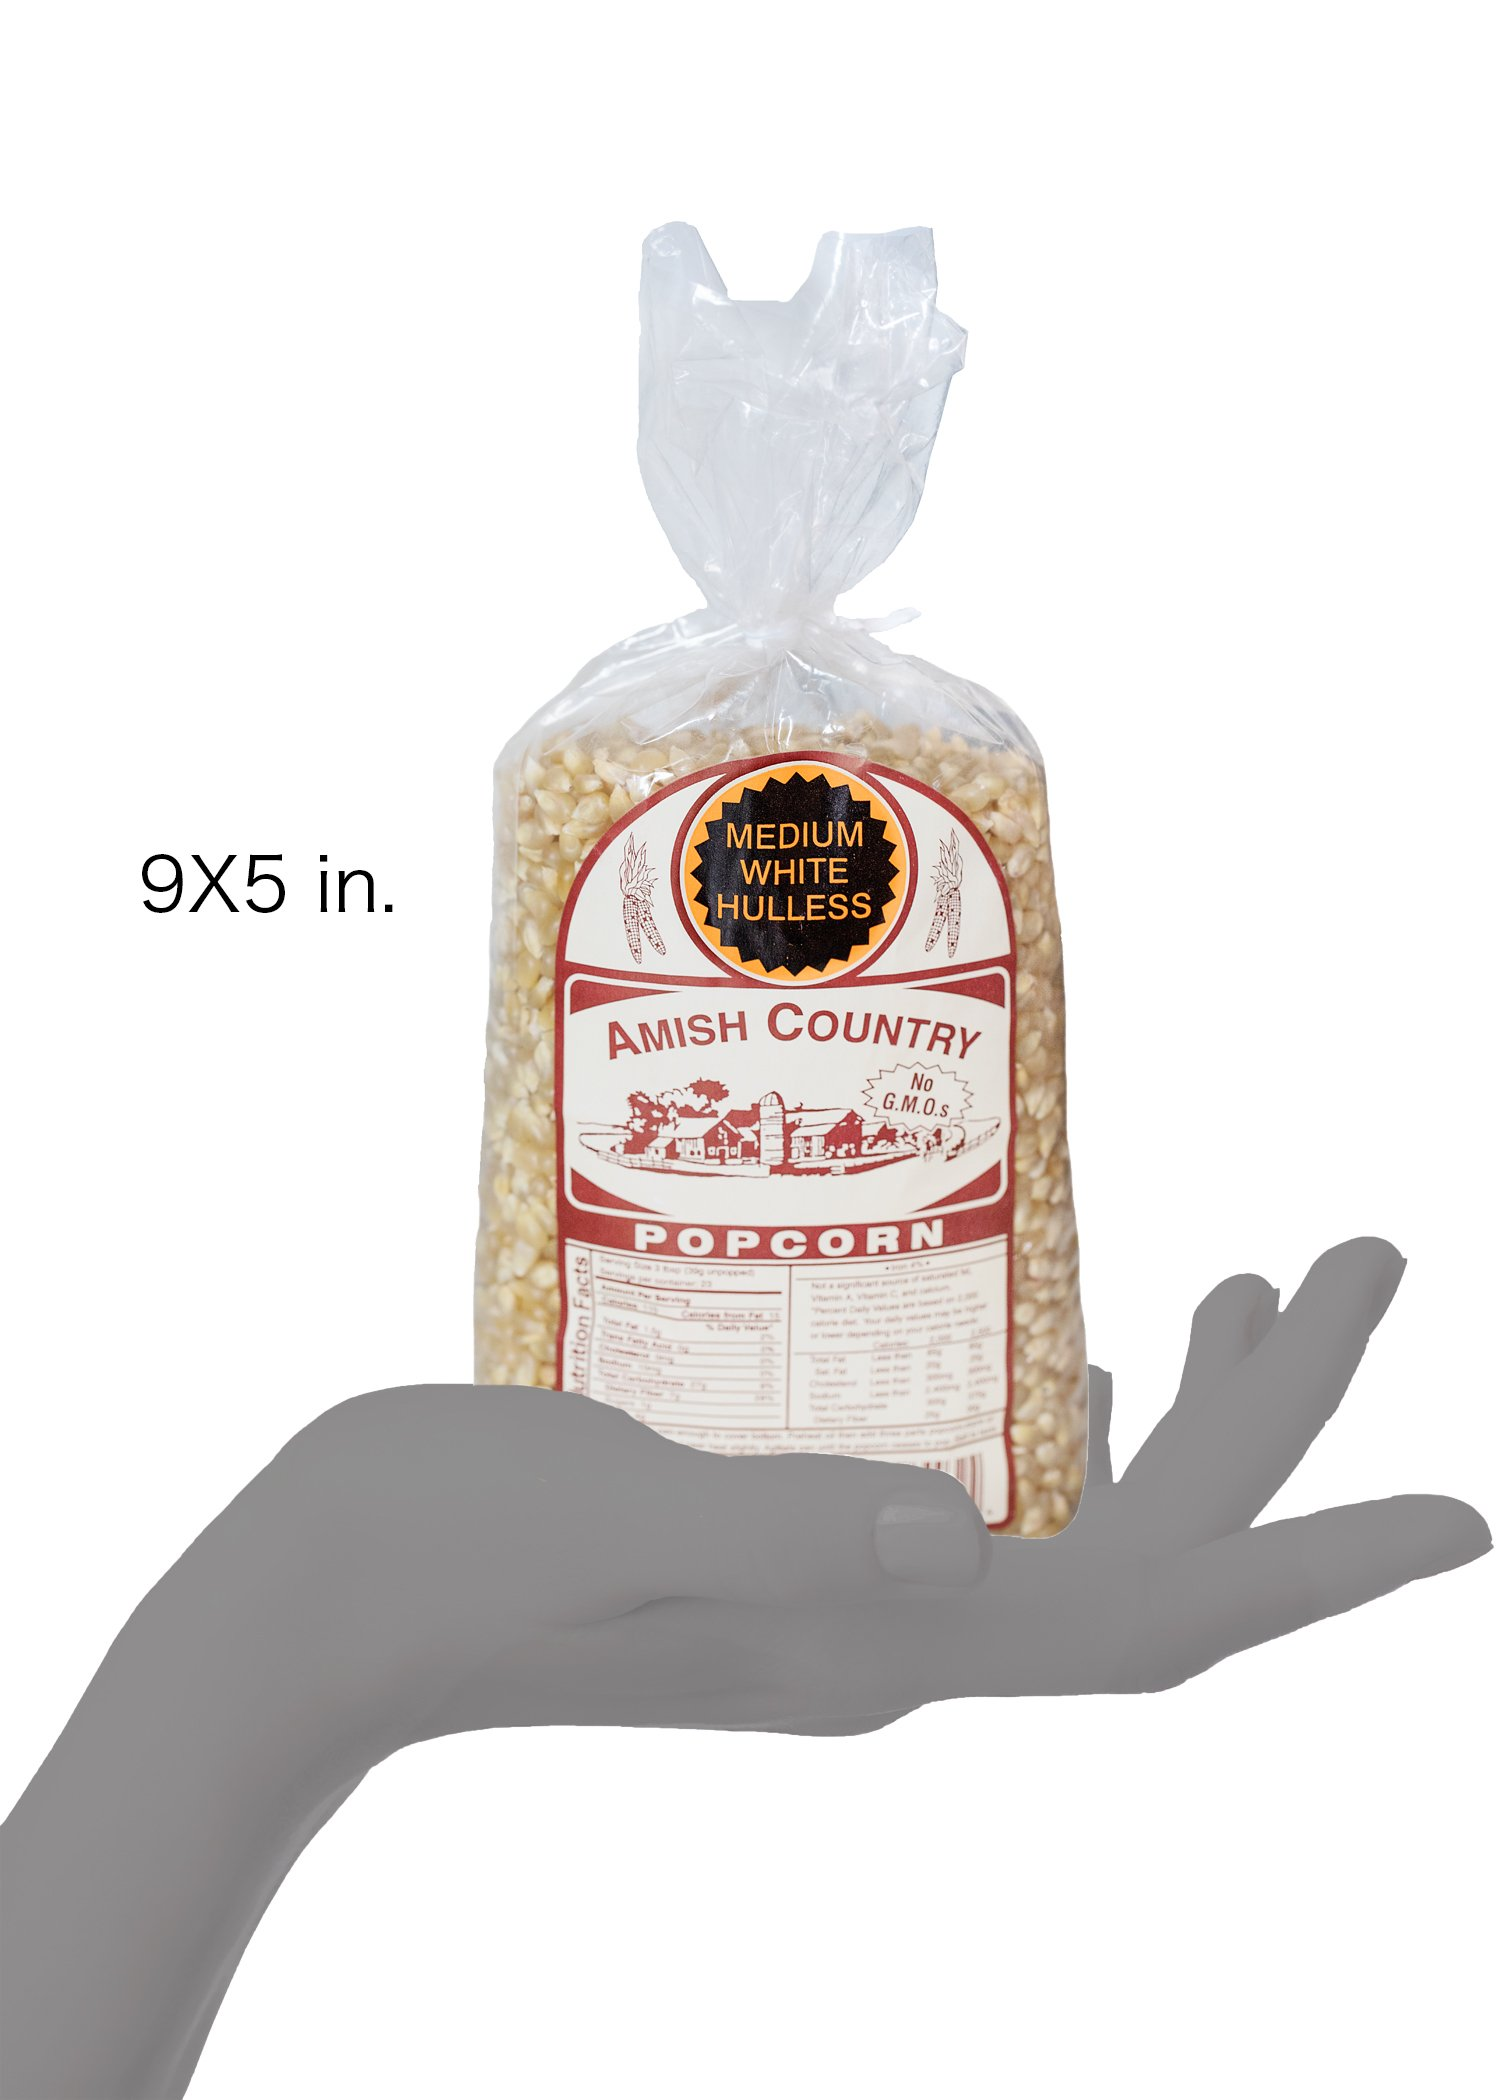 Amish Country Popcorn - Medium White Popcorn (2 Pound Bag) Old Fashioned, Non GMO, and Gluten Free - with Recipe Guide by Amish Country Popcorn (Image #9)